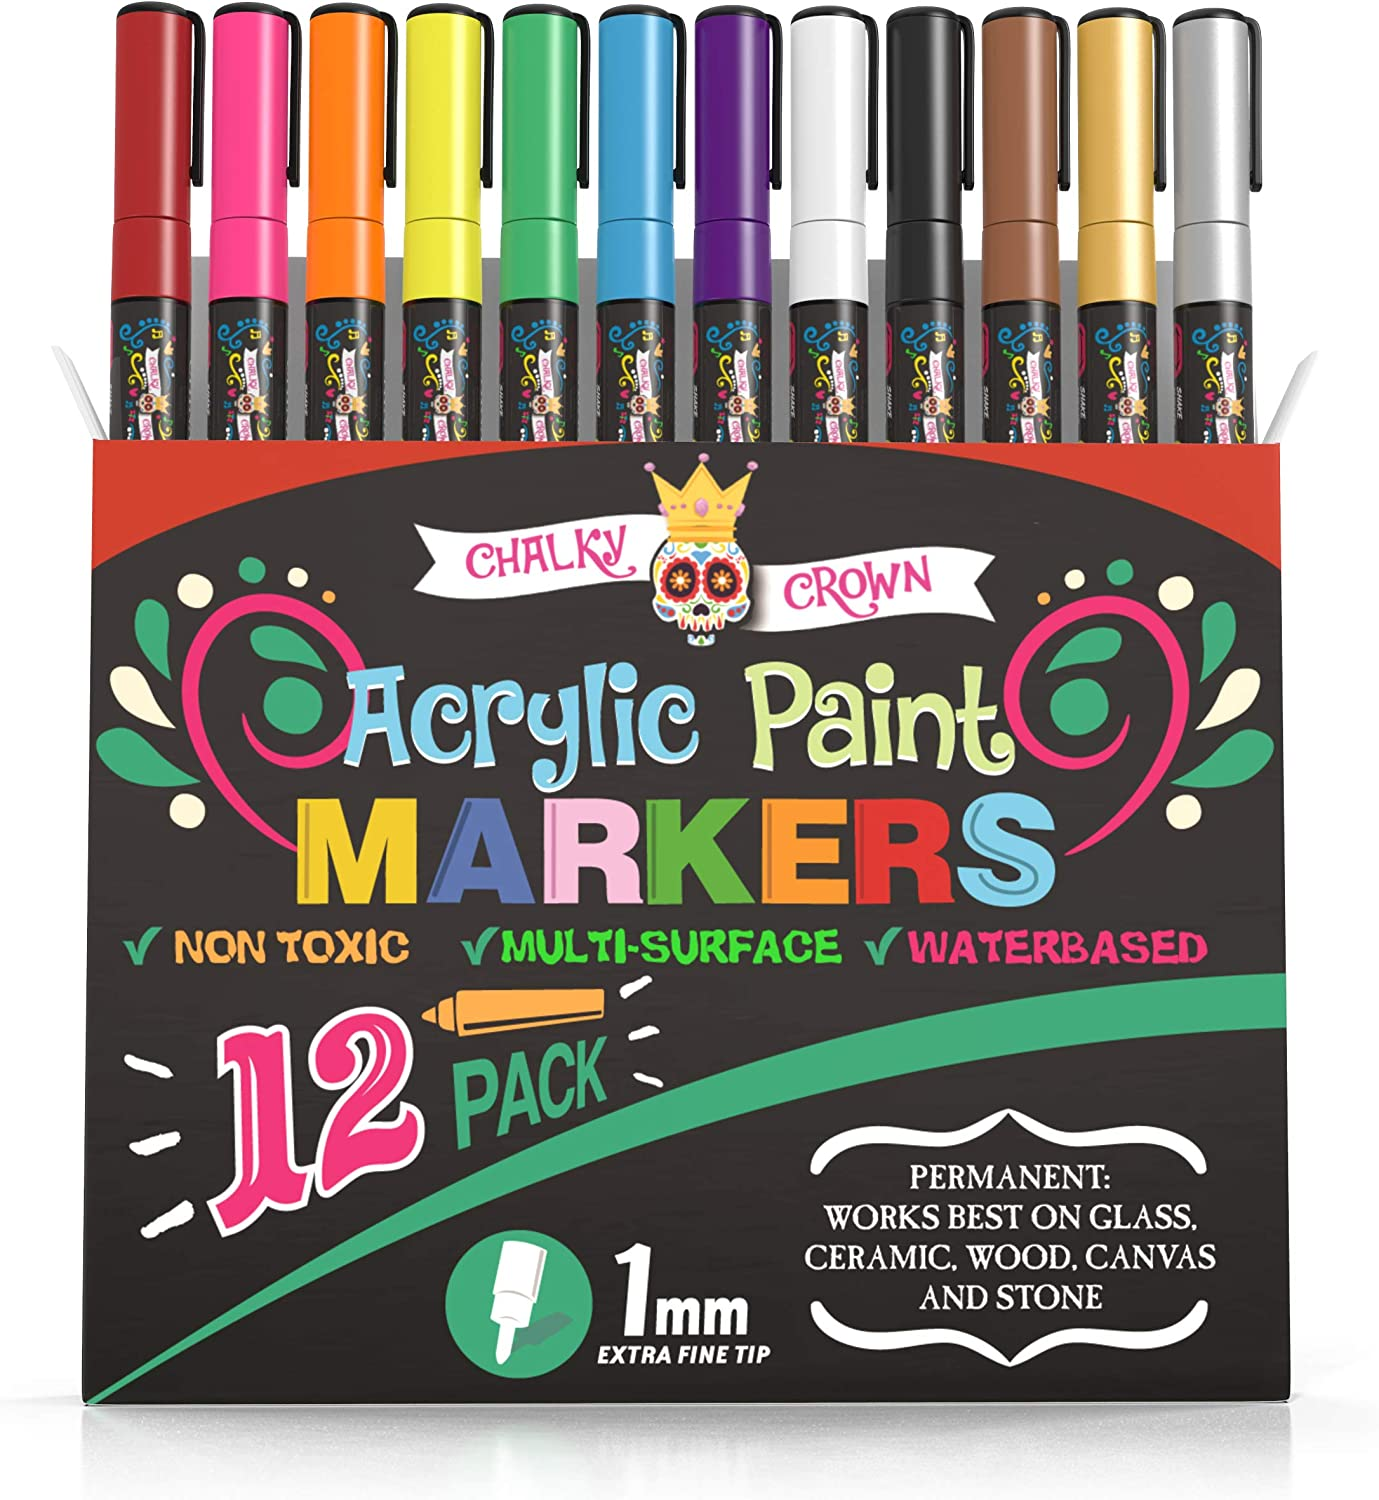 Acrylic Paint Markers - Acrylic Paint Pens for Rock Painting, Stone, Ceramic, Glass, Wood, Canvas - 1mm Fine Tip Paint Pens (12 Pack)